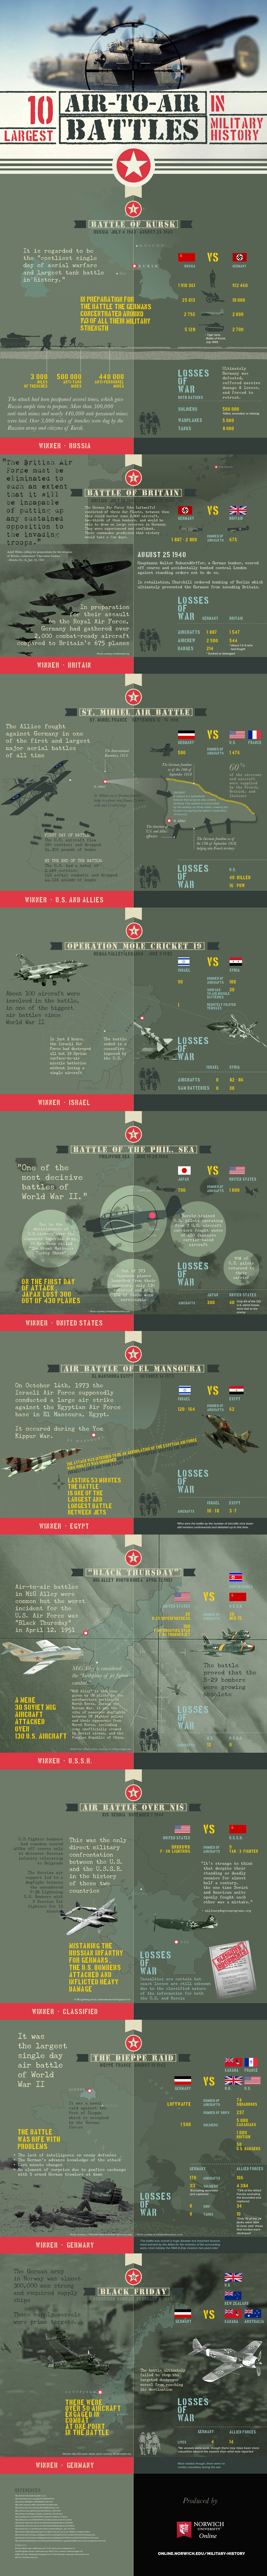 infographic on the largest air battles in history